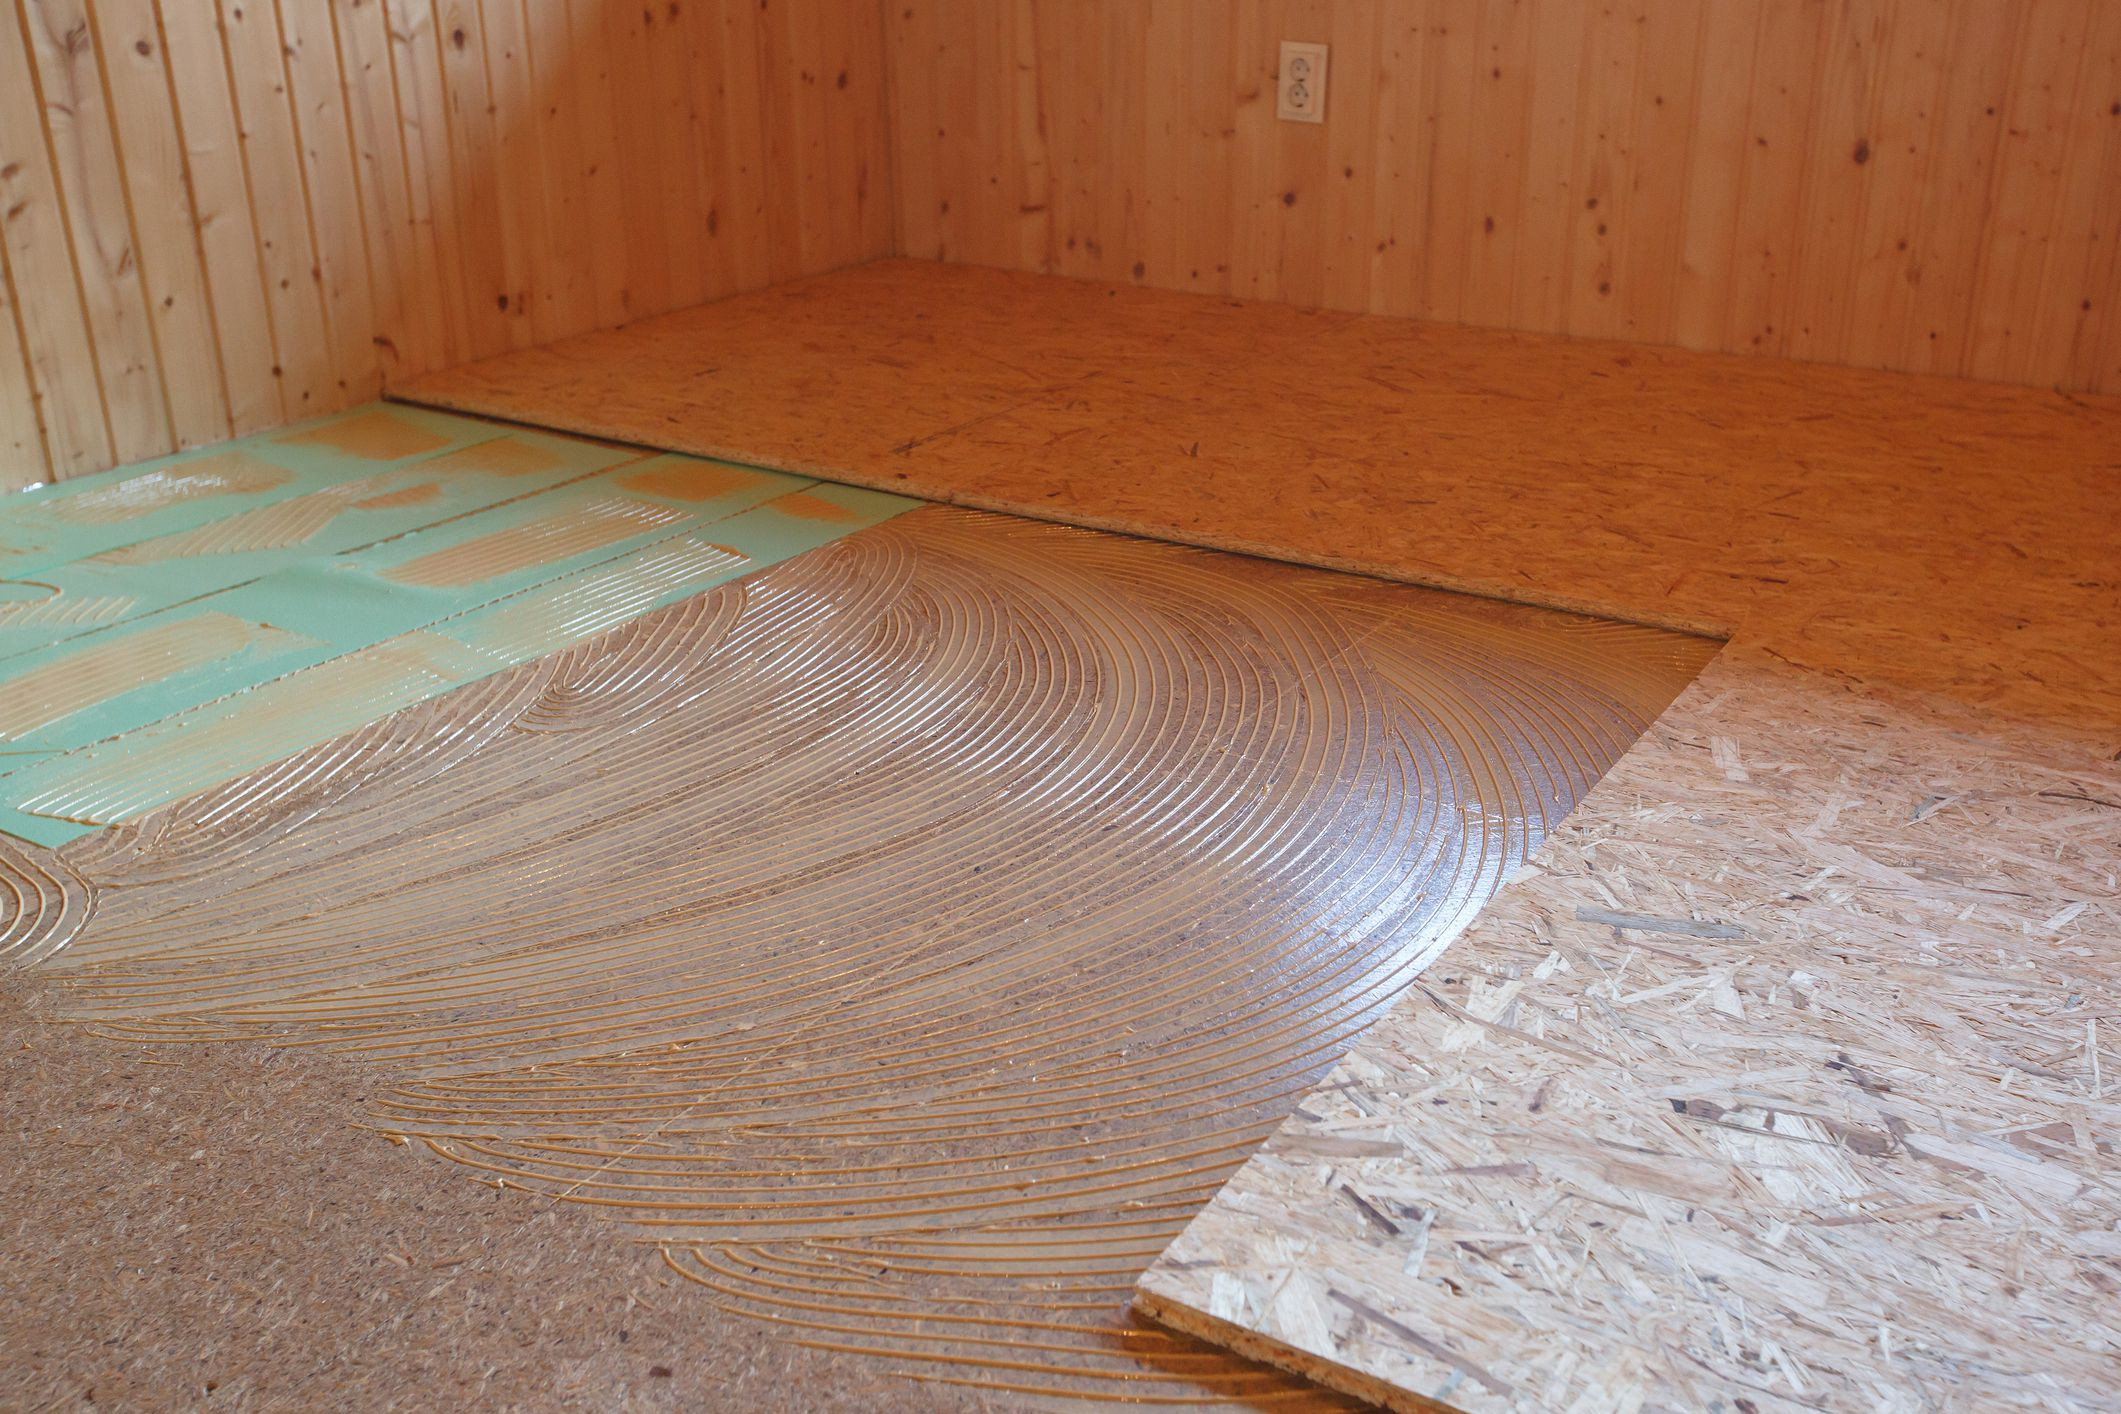 how to install engineered hardwood floor over plywood of types of subfloor materials in construction projects in gettyimages 892047030 5af5f46fc064710036eebd22